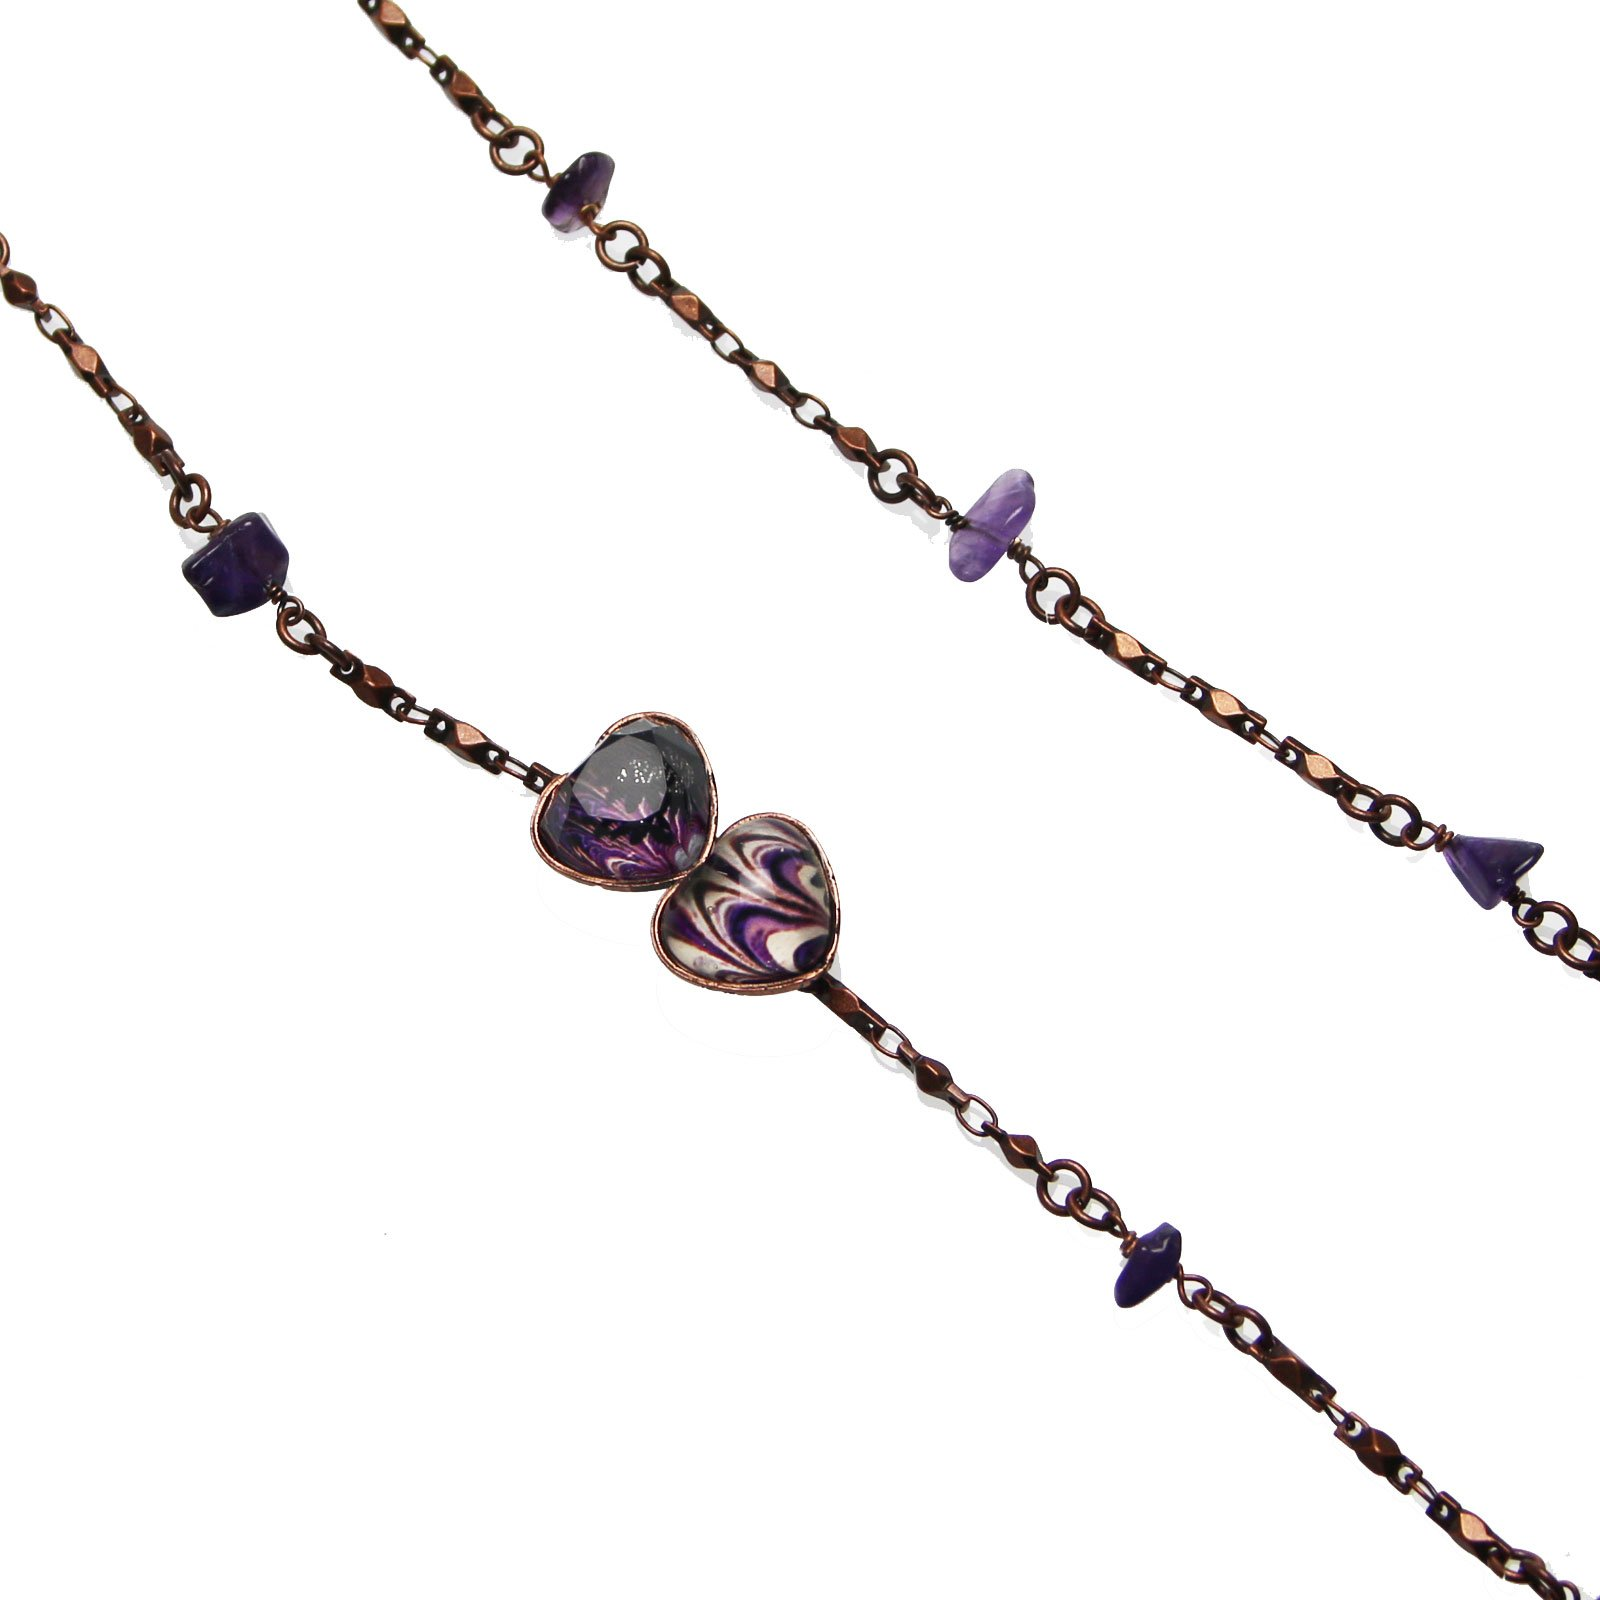 Tamarusan Glasses Chain Seventy Years Of Age Amethyst Strap Heart Marble